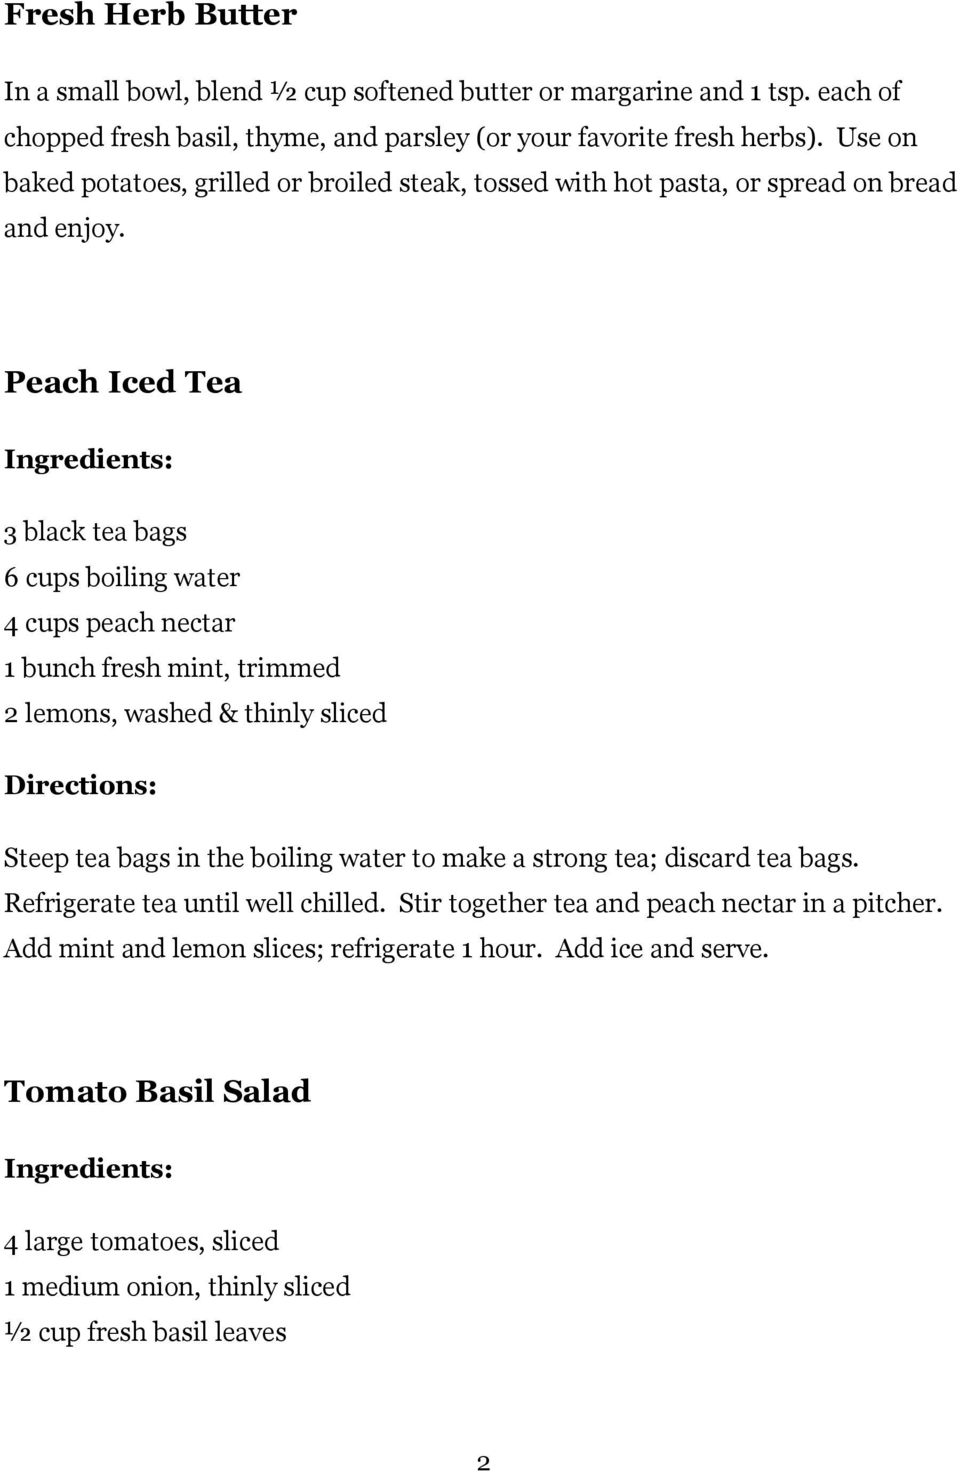 Peach Iced Tea 3 black tea bags 6 cups boiling water 4 cups peach nectar 1 bunch fresh mint, trimmed 2 lemons, washed & thinly sliced Steep tea bags in the boiling water to make a